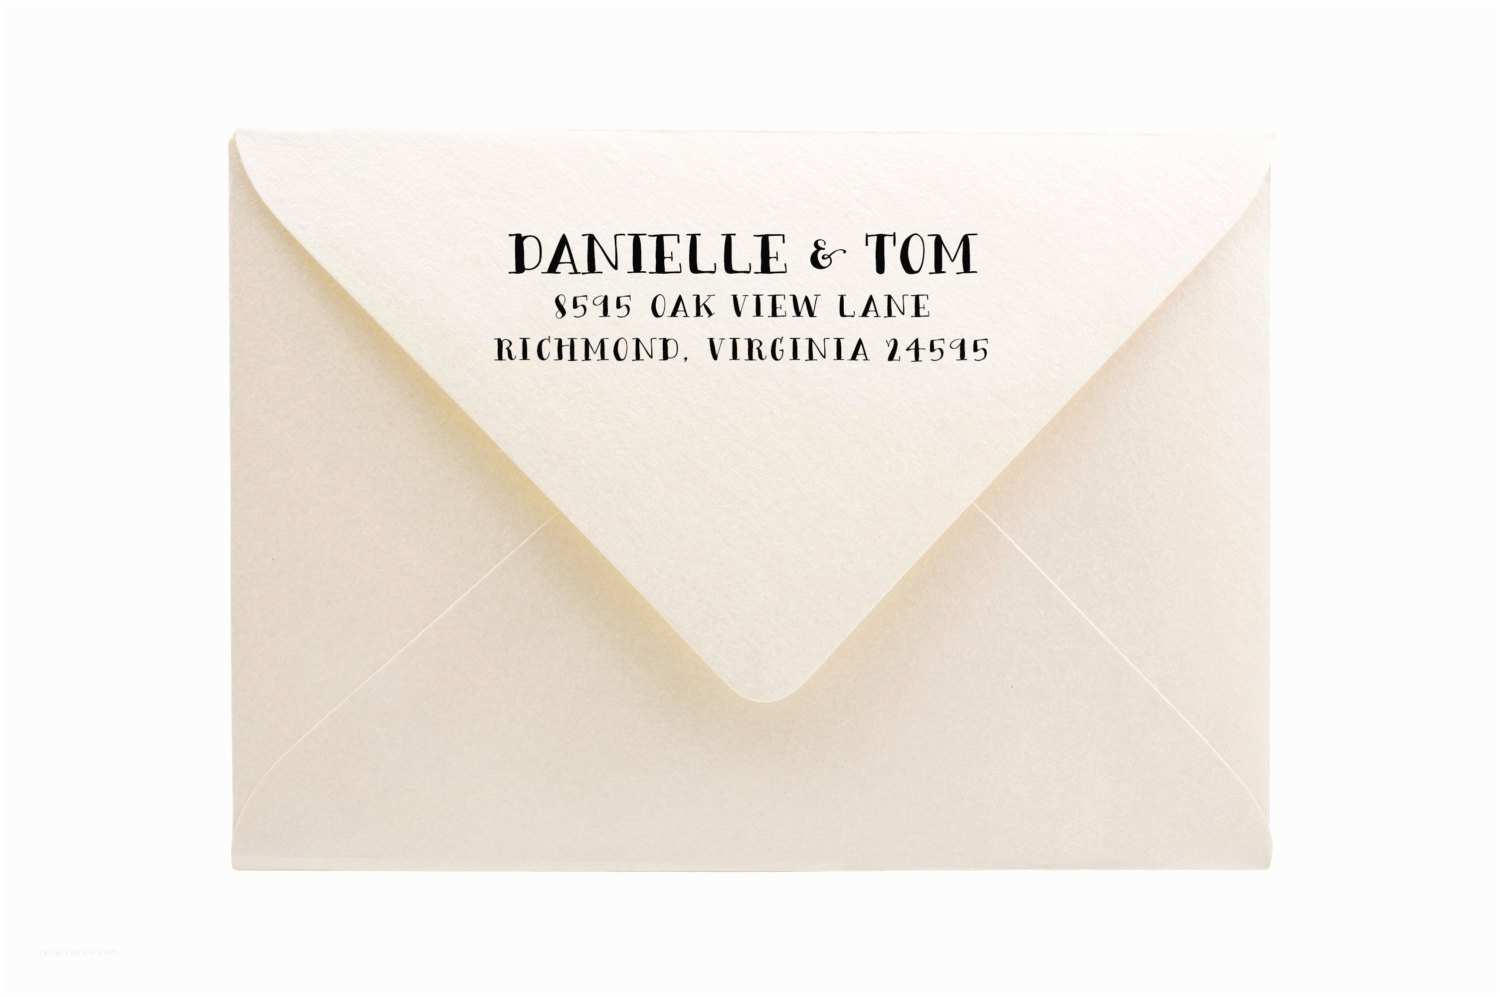 Postage Stamps for Wedding Invitations Wedding Stamp Custom Return Address Stamp Wedding Invitation